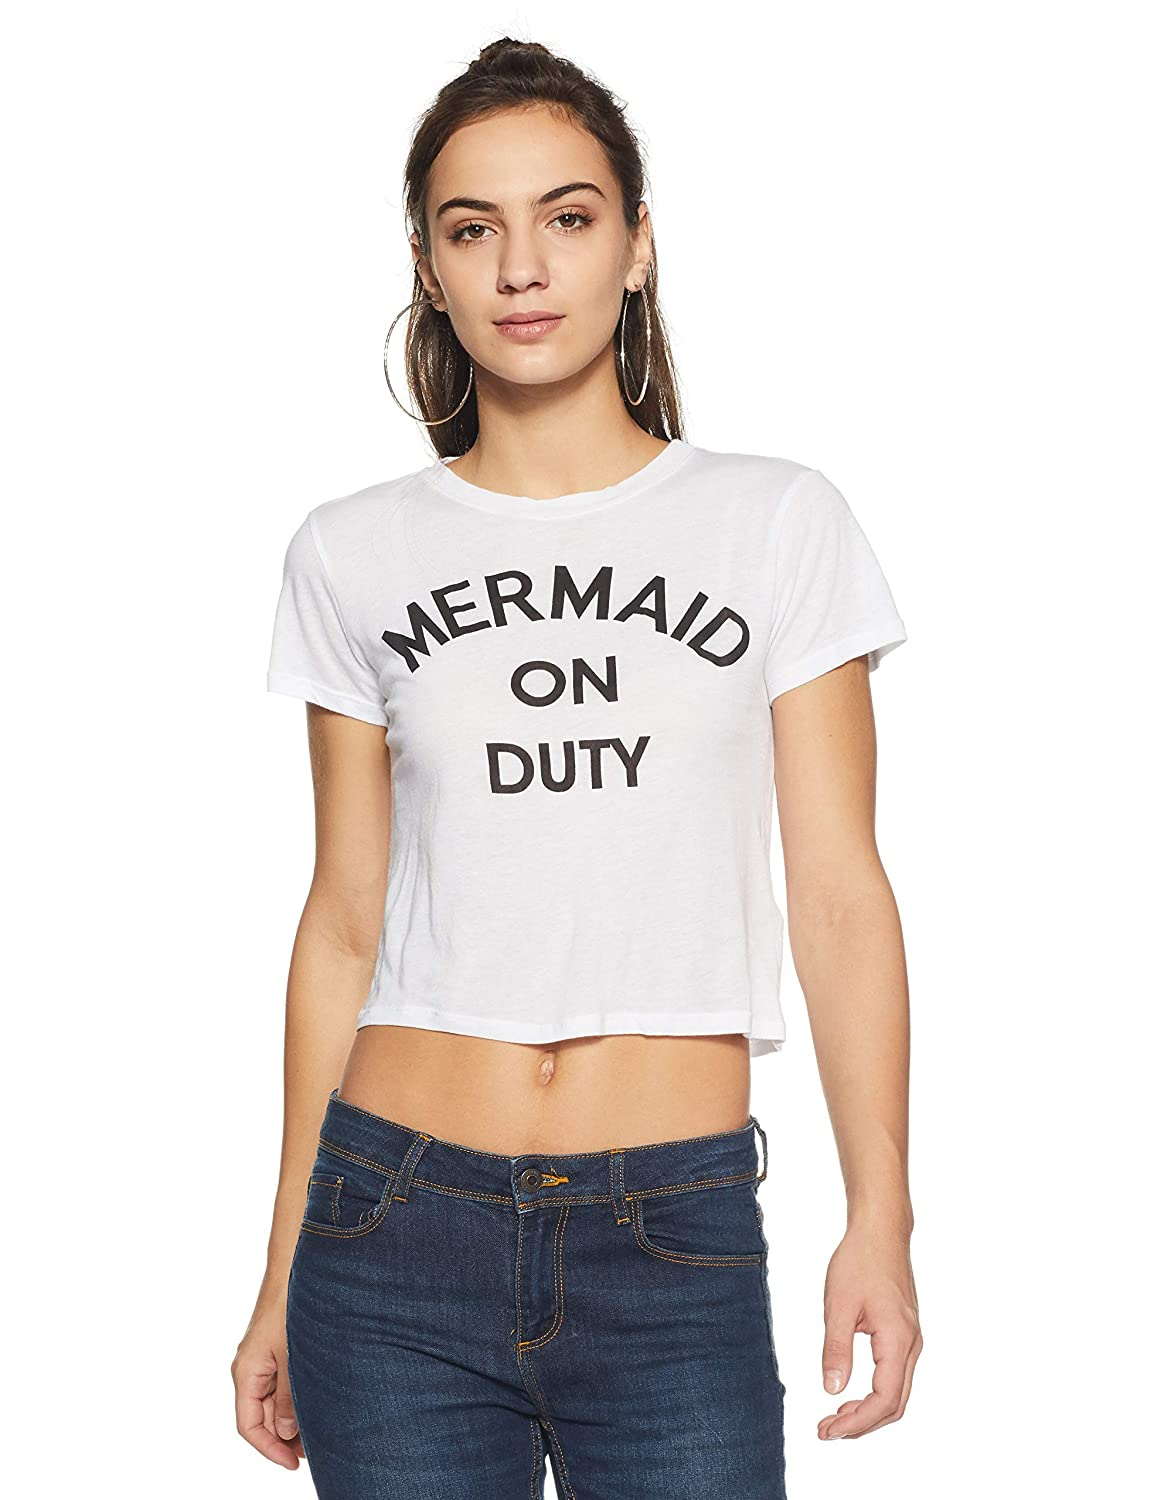 3c45fe0a9 Forever 21 Women's Mermaid On Duty Graphic Tee Logo 195514, Medium,  White/Black: Amazon.in: Clothing & Accessories